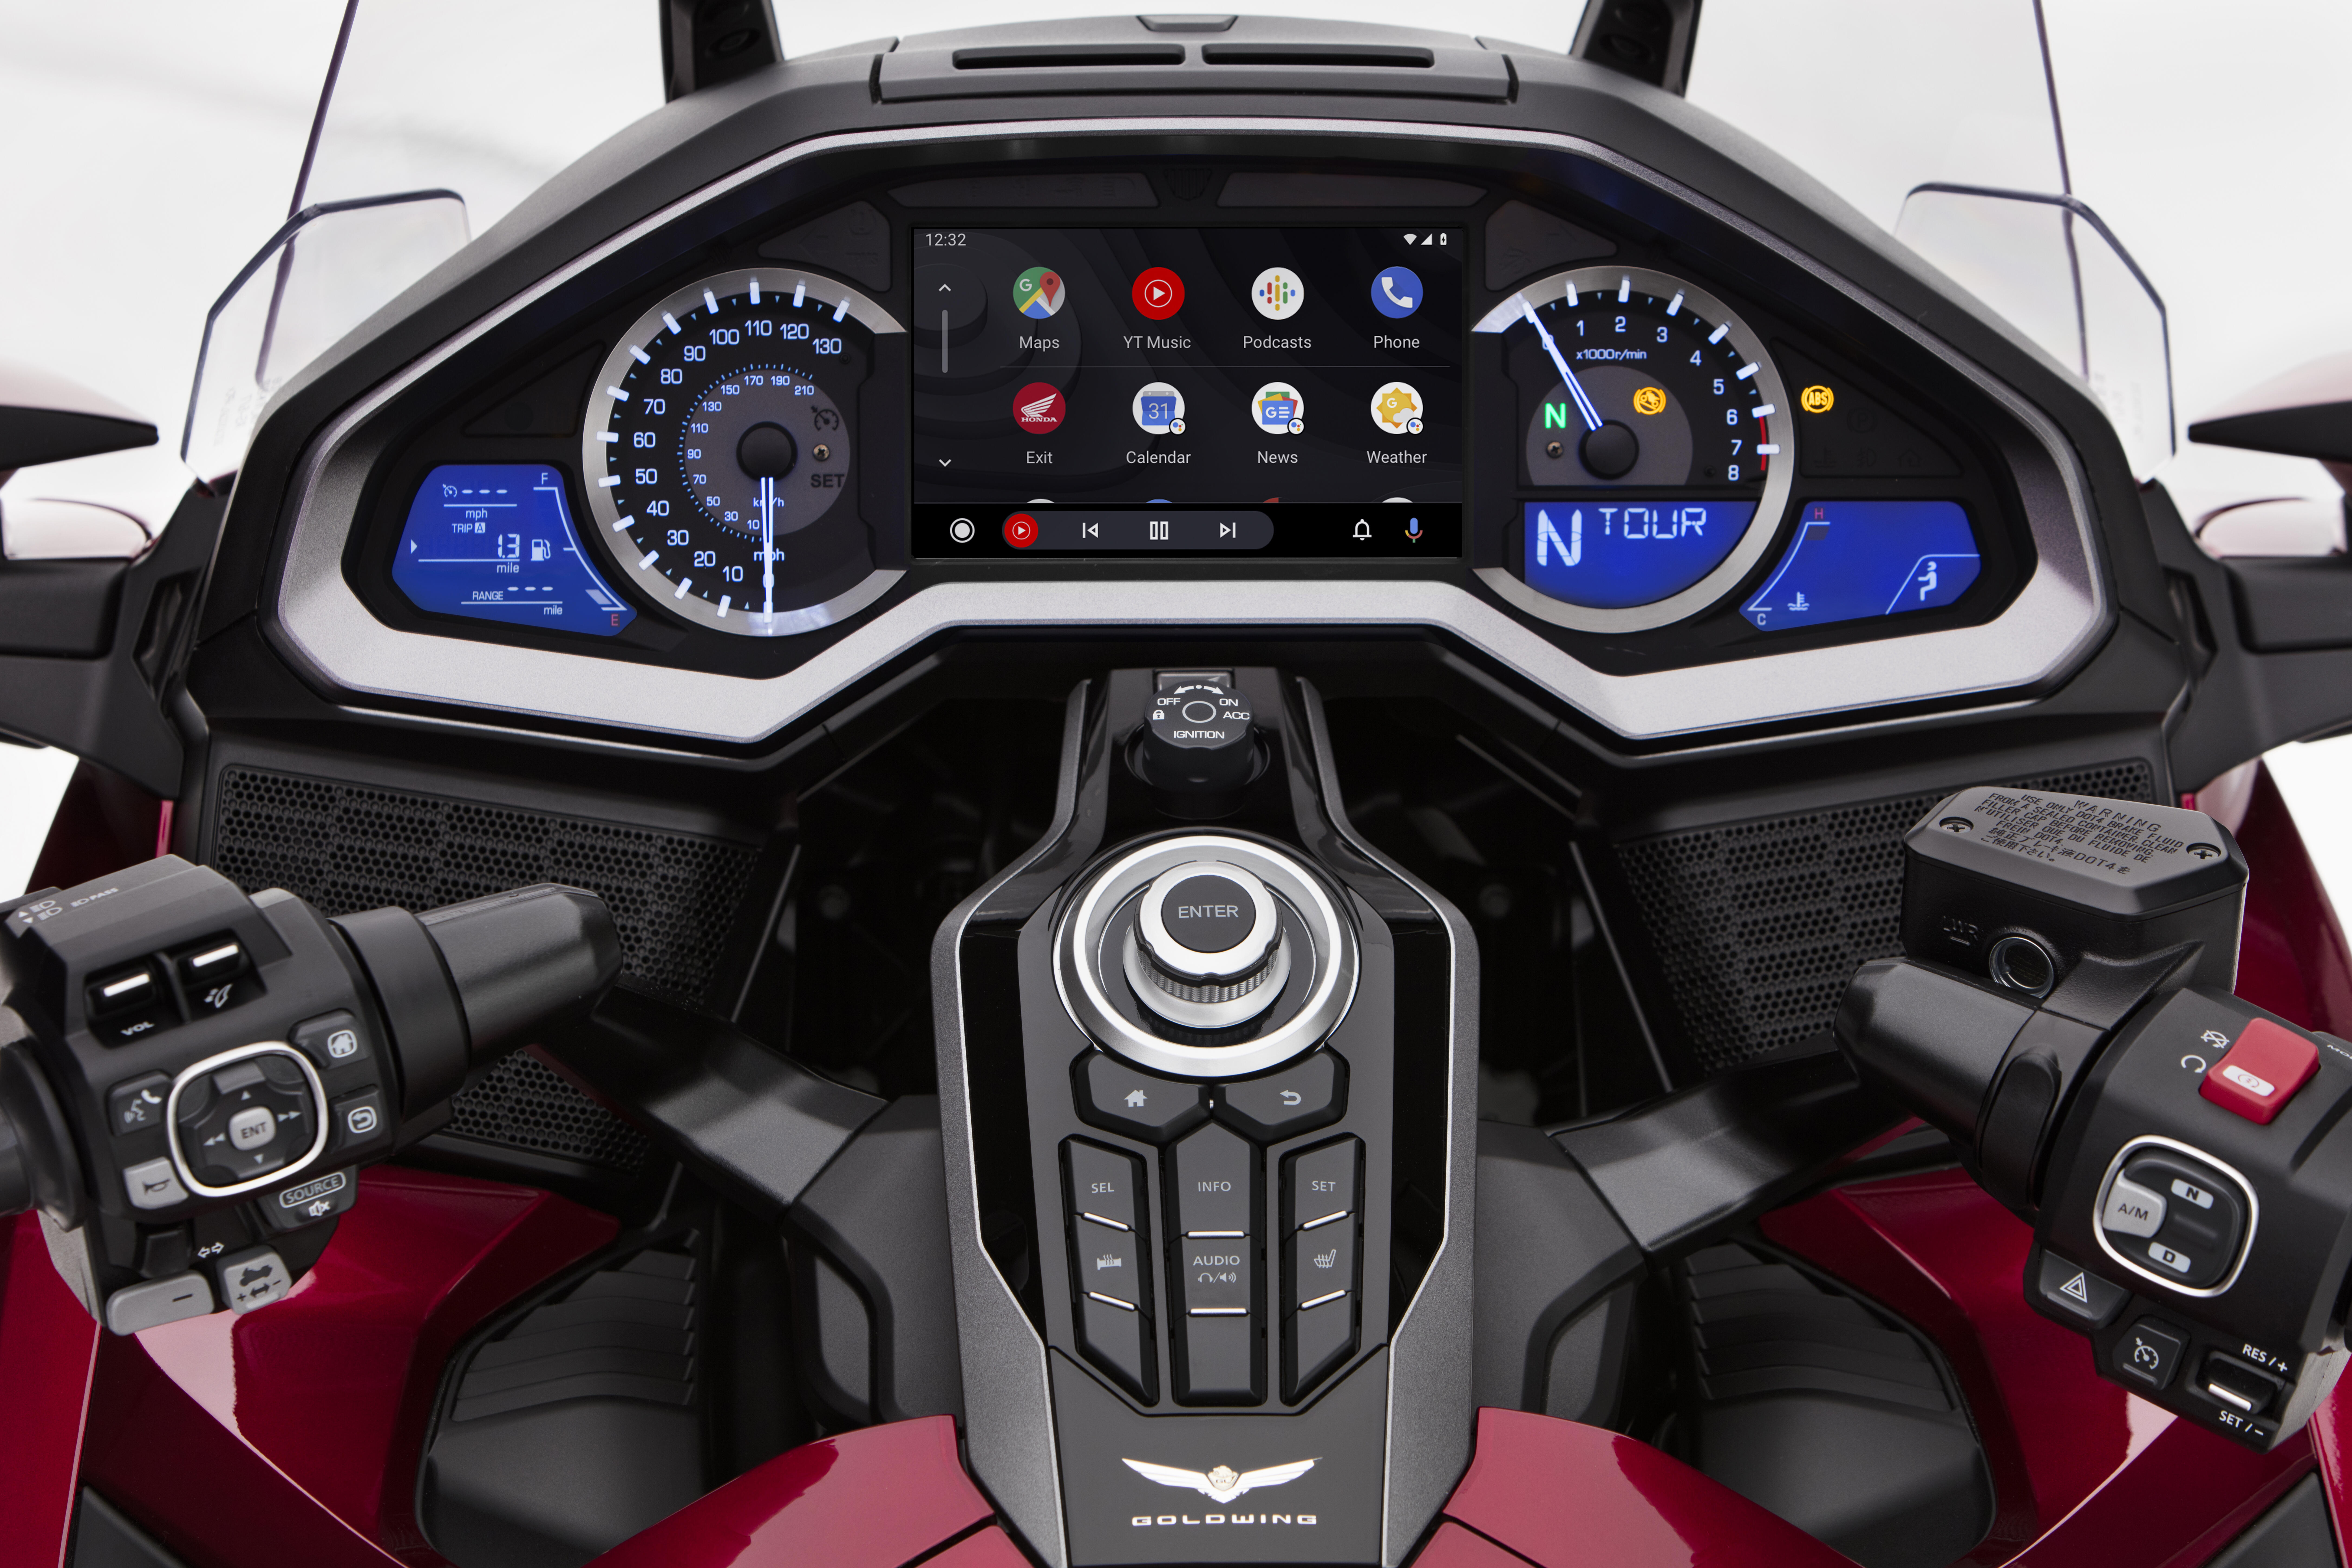 gold-wing-android-auto-1